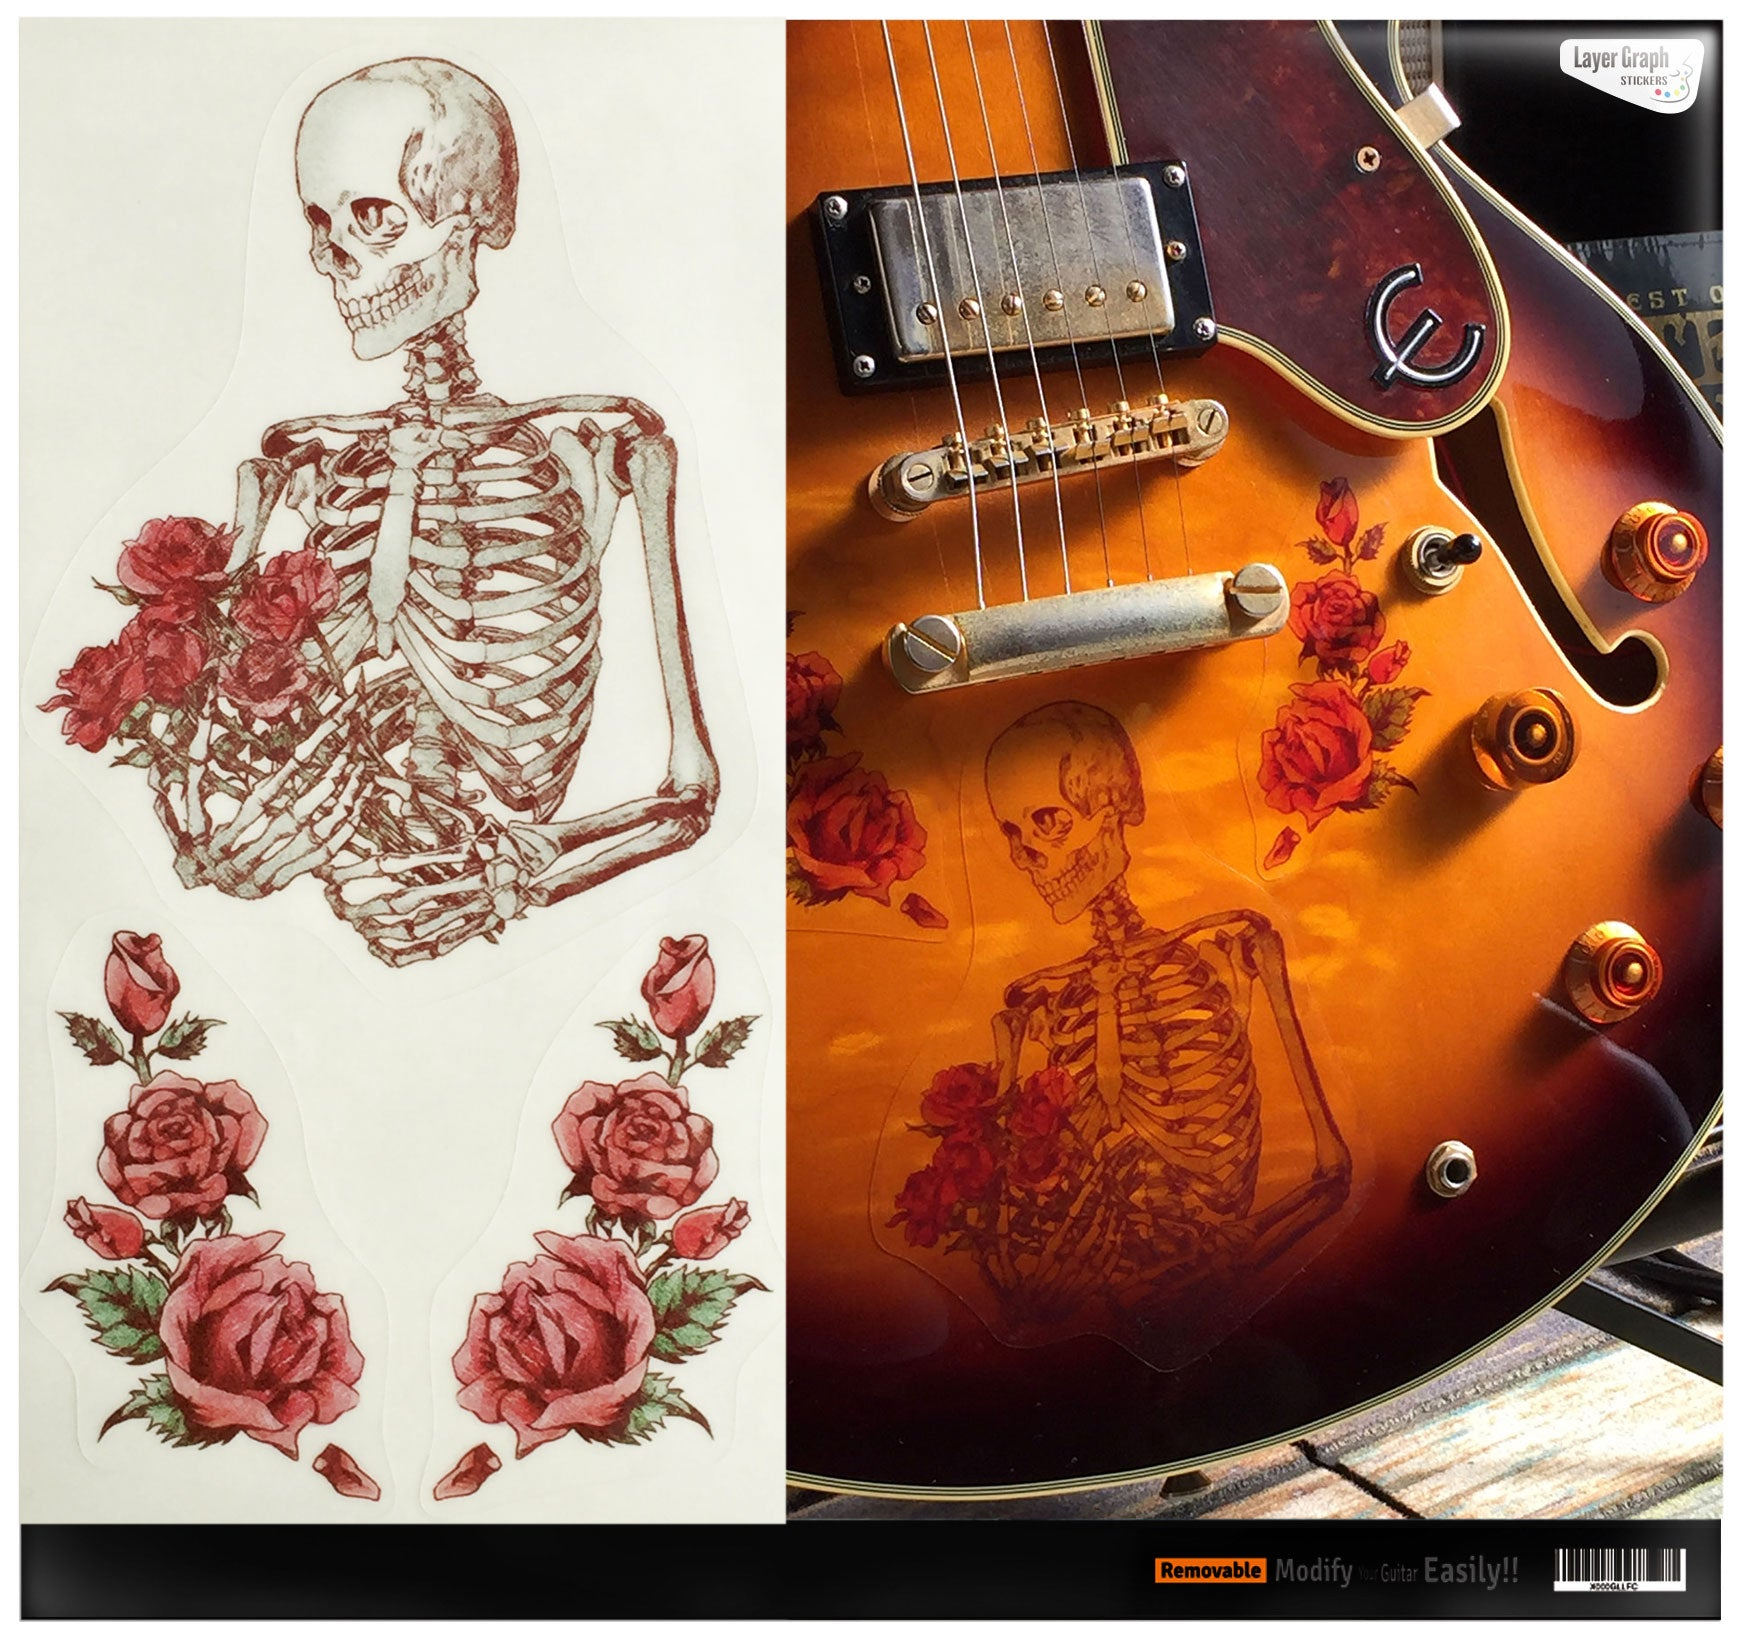 Layer Graph Sticker / Skeleton - Memories in a Bouquet of Roses - Inlay Stickers Jockomo